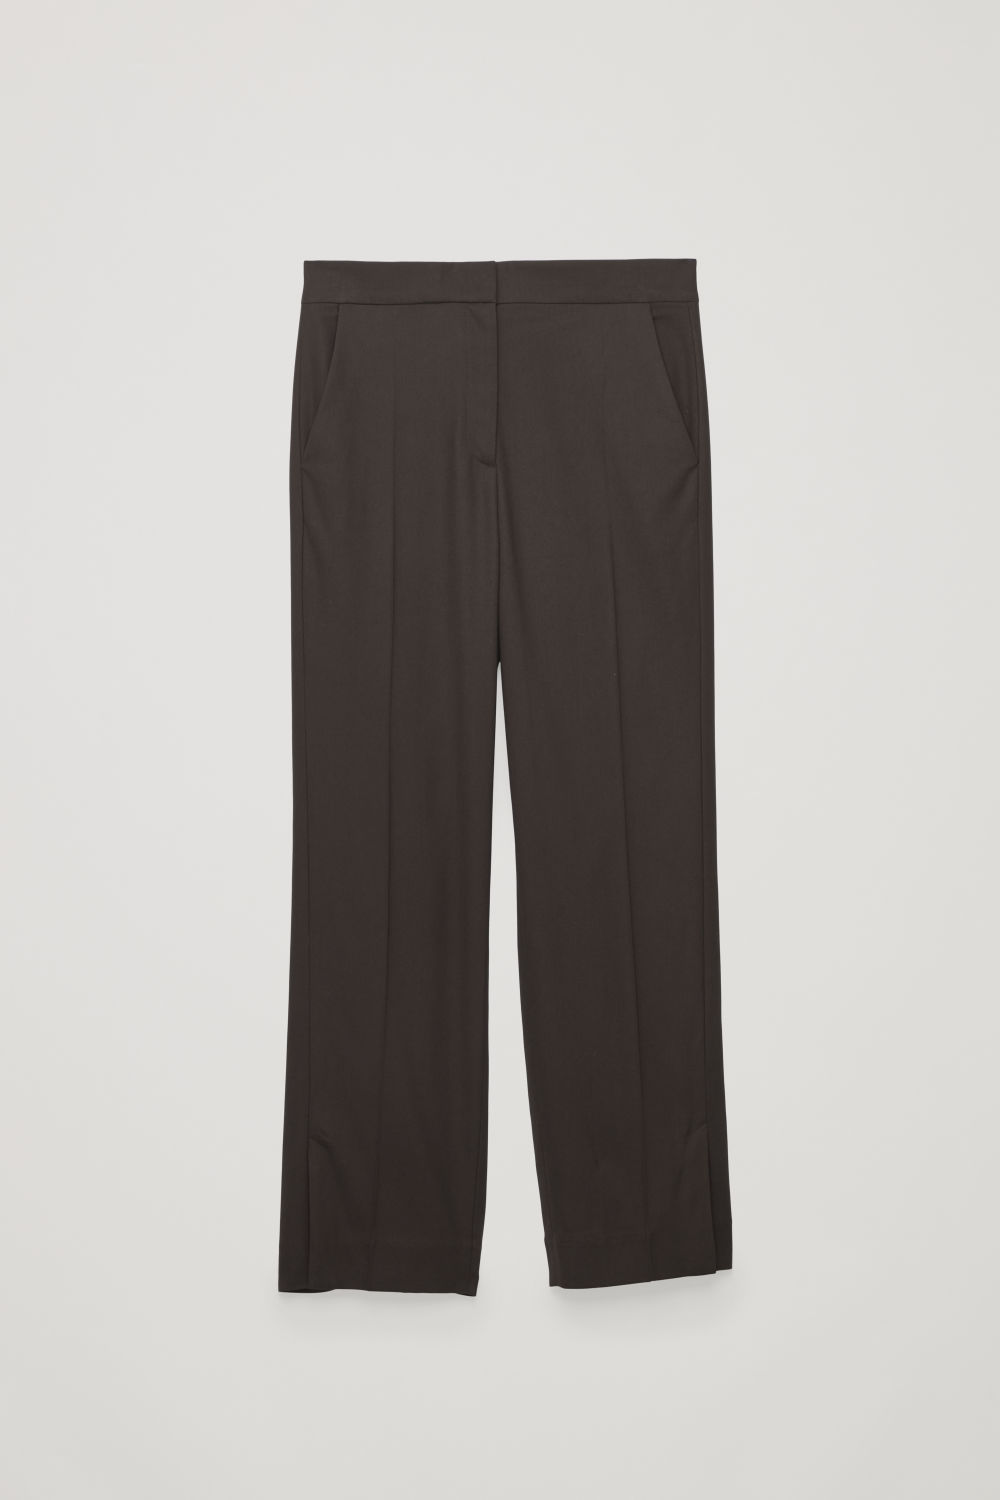 VENT-DETAIL TAILORED TROUSERS